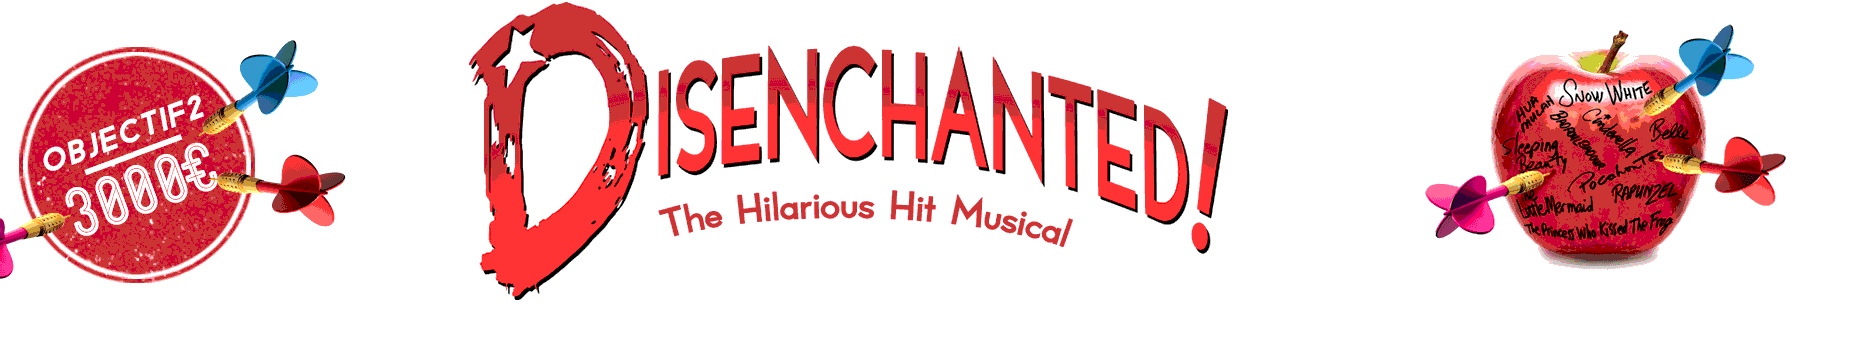 Disenchanted! The Musical à Paris -